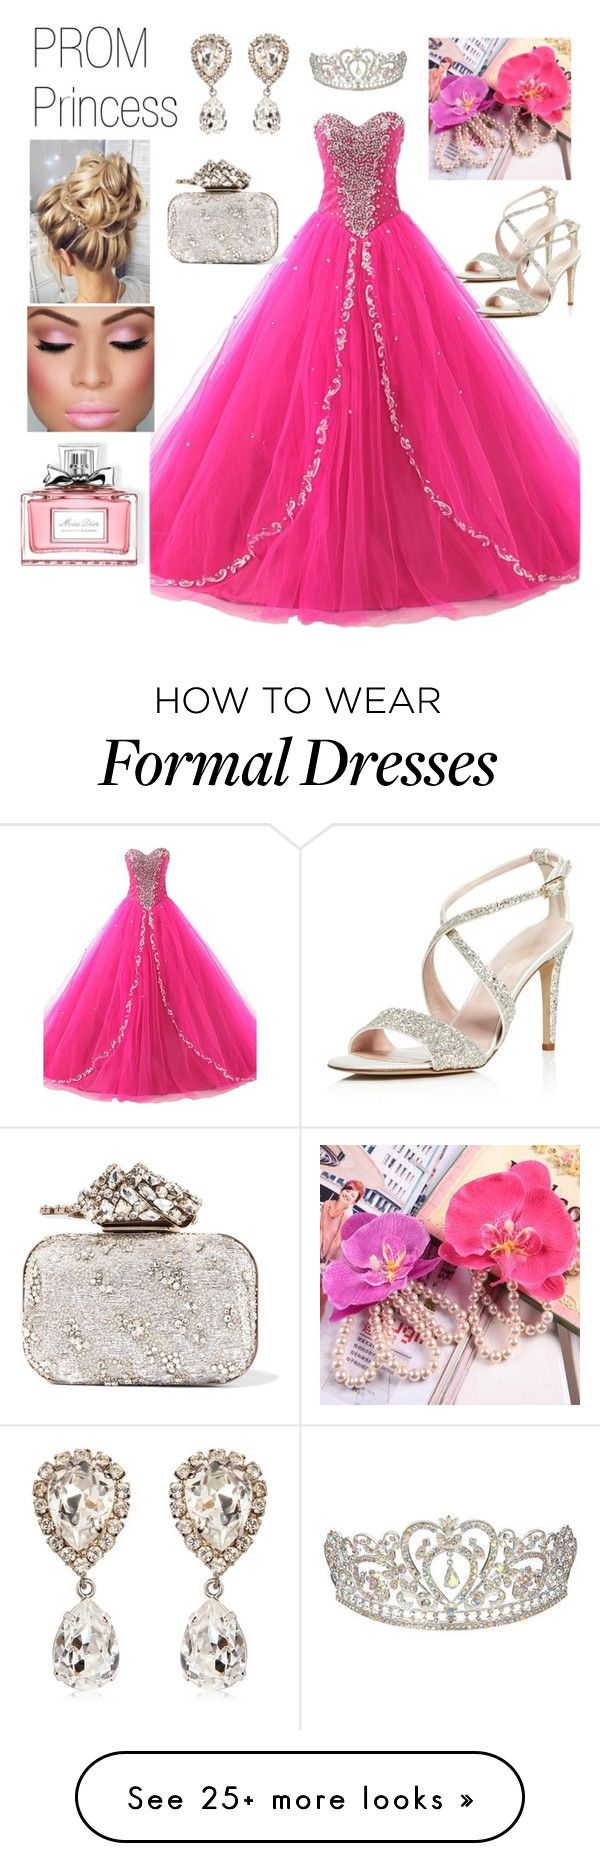 """Prom Princess"" by boutiquebrowser on Polyvore featuring Dolce&Gabbana, Jimmy Choo, Kate Spade, Sunset Hours and Christian Dior"